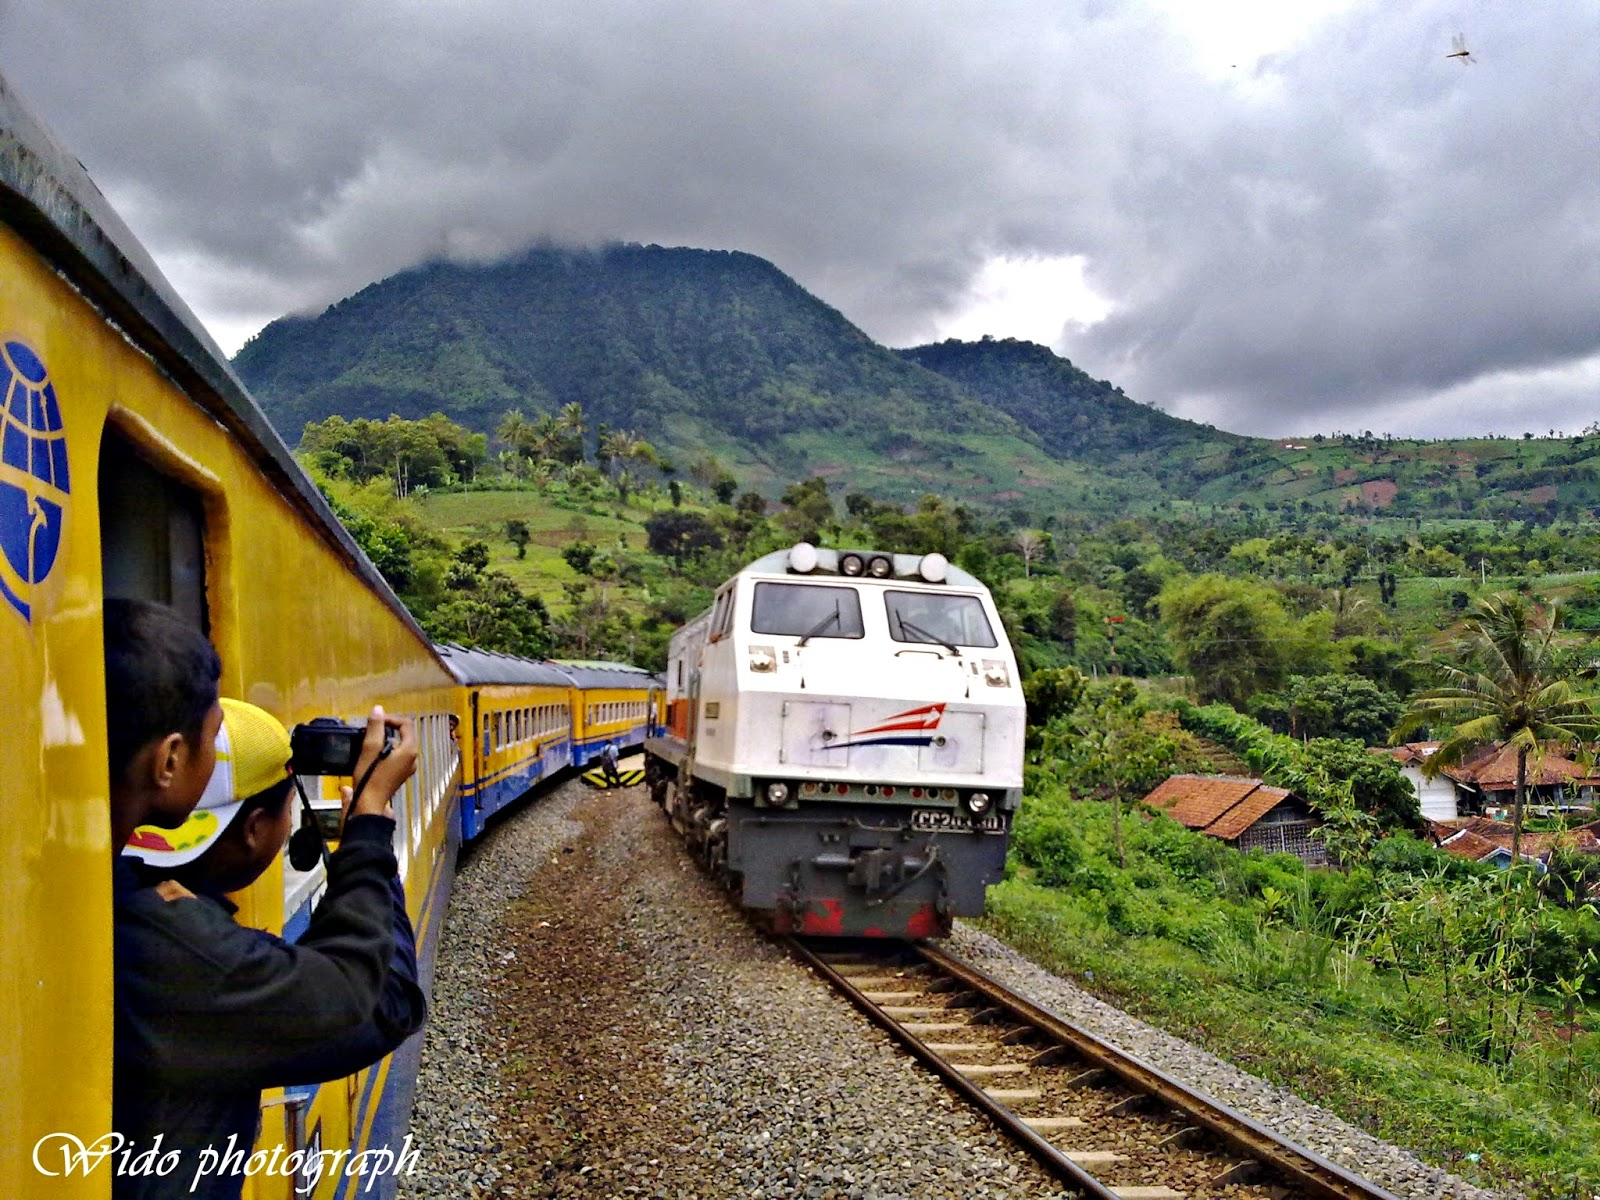 Yogya-Sideraja train by Wido